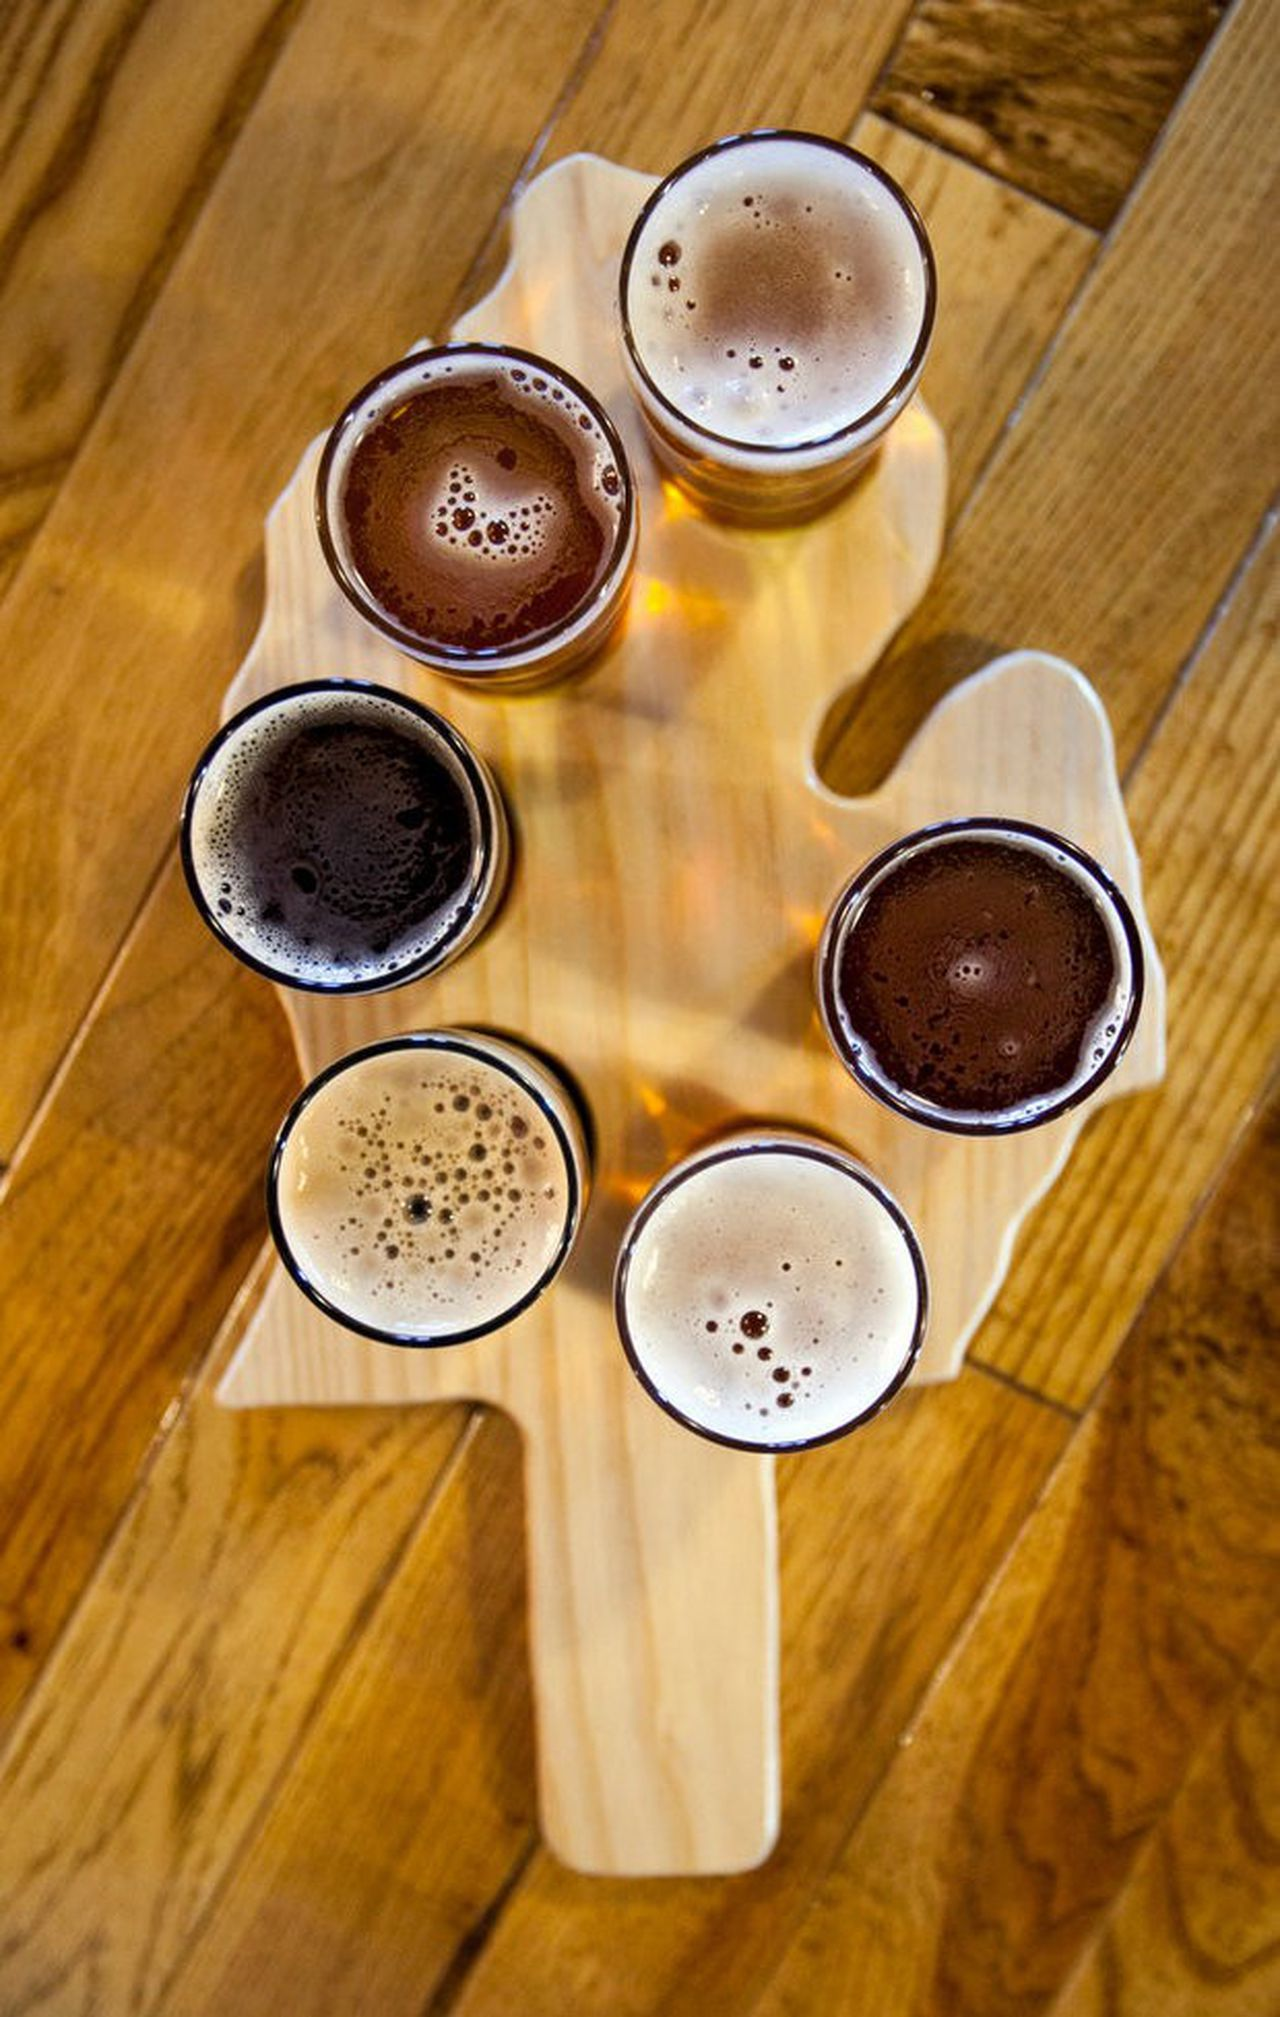 Glasses of beer on a state of Michigan shaped board